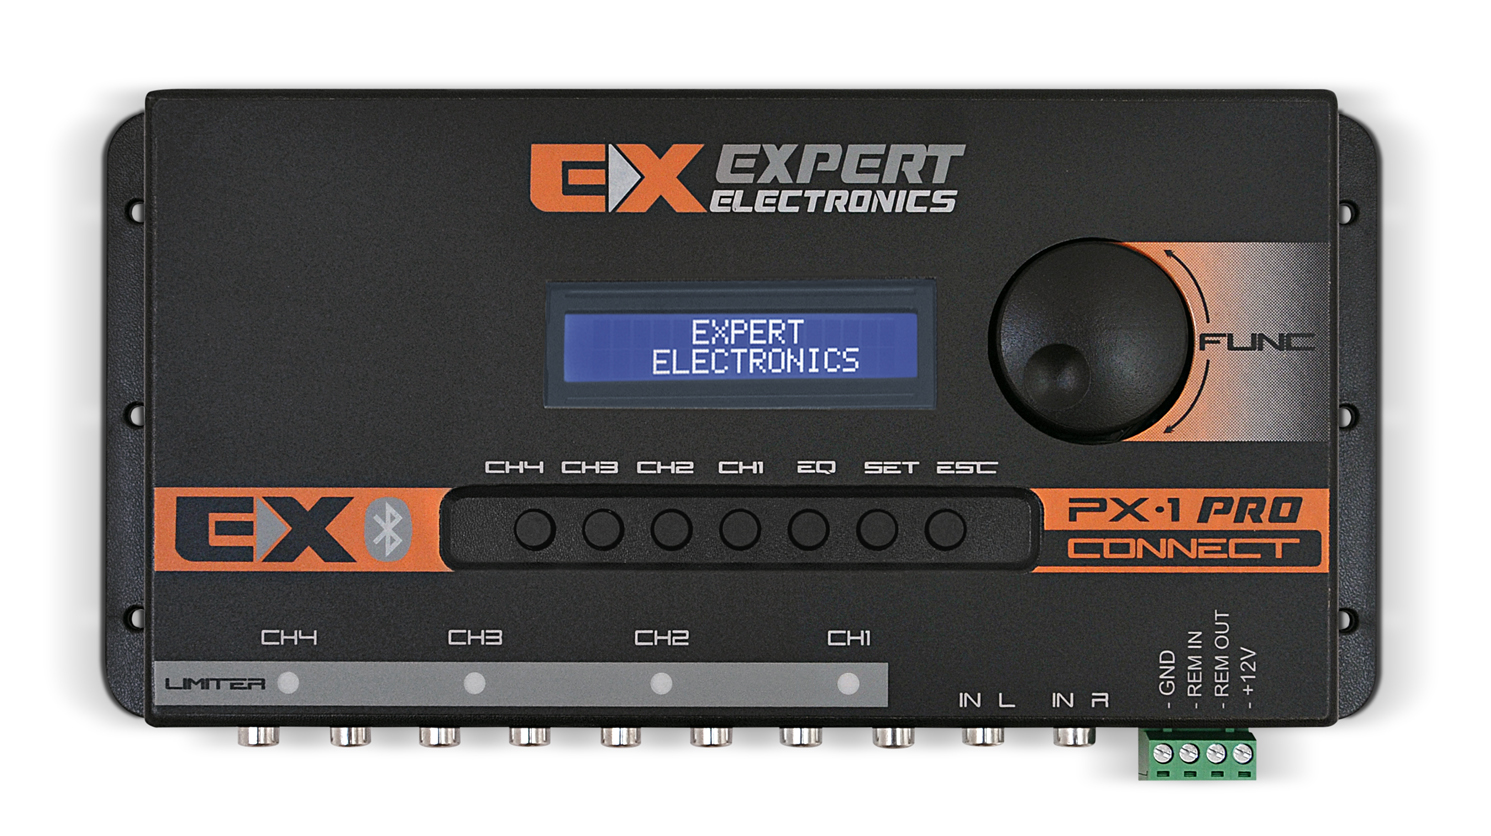 PX-1 PRO CONNECT_SUPERIOR_EXPERT